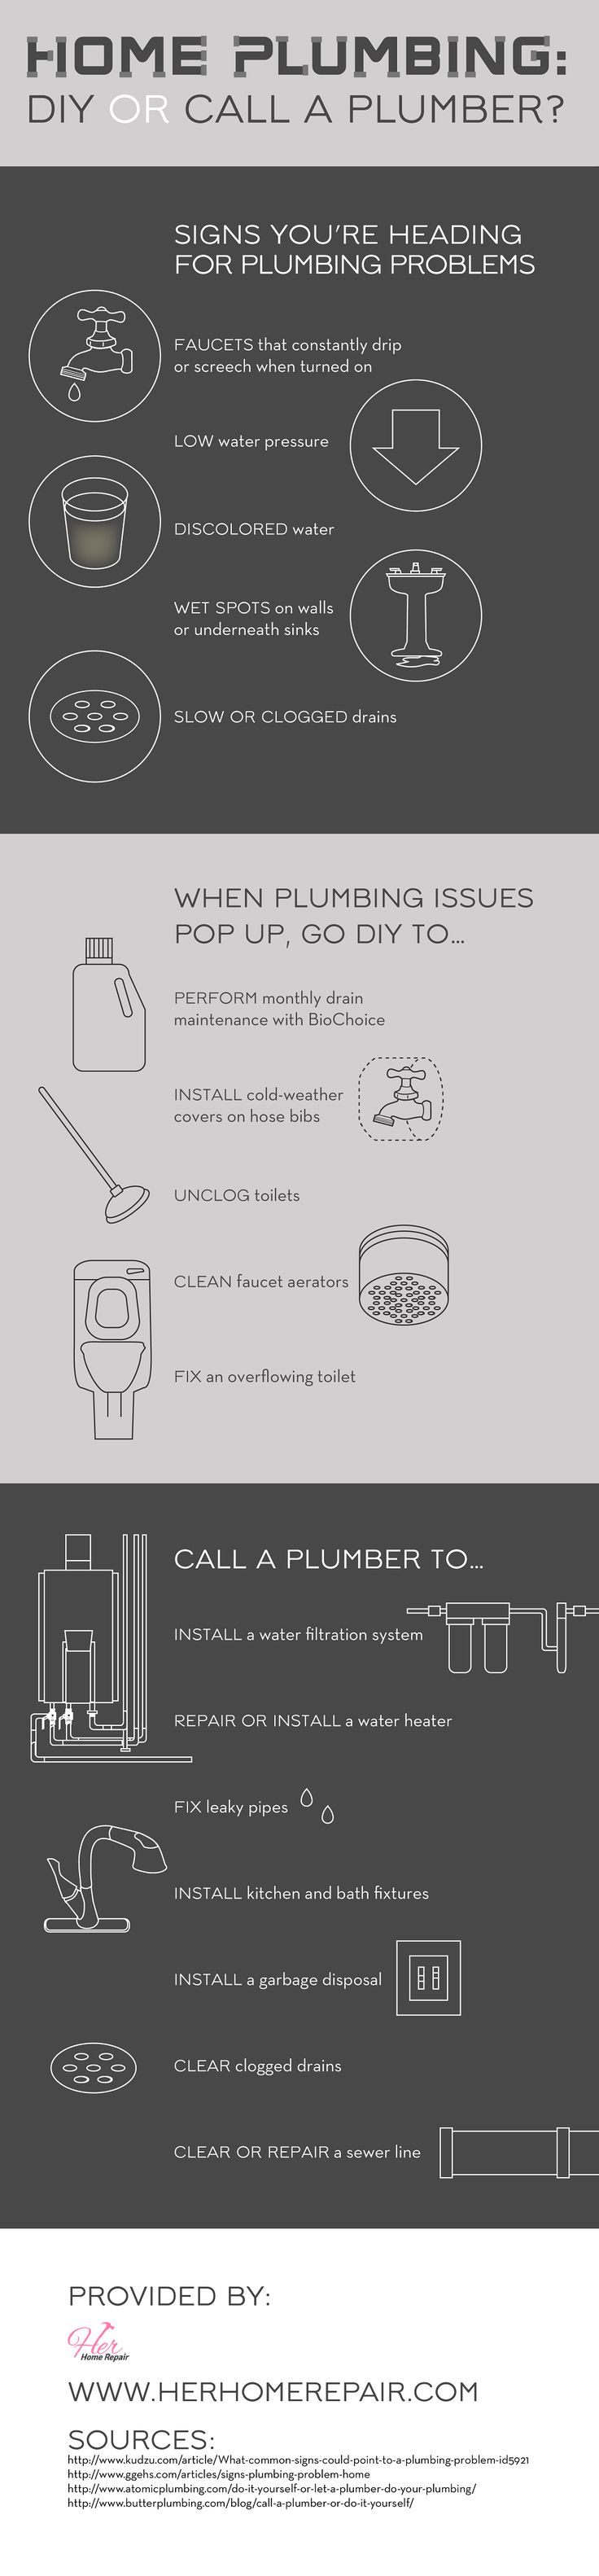 If you re interested in remodeling your home contact us to learn - You Ve Got Plumbing Problem At Home Can You Handle It On Your Own Or Should You Call The Professionals Learn How To Answer That Question By Clicking Over